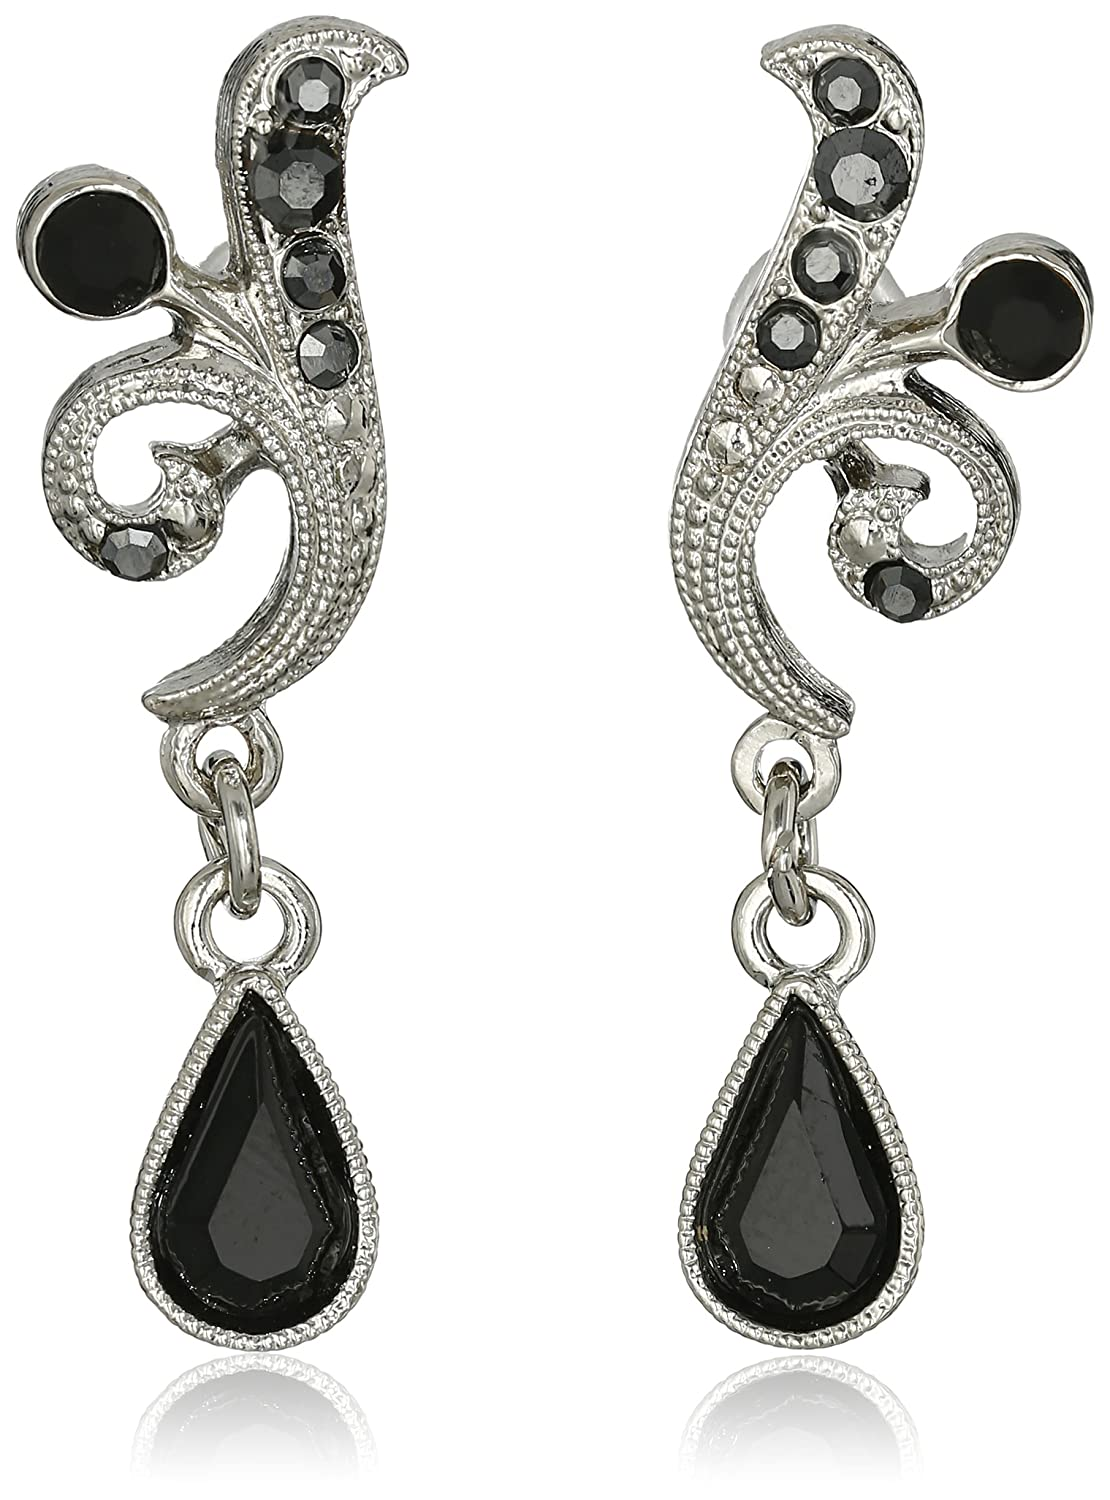 1920s Gatsby Jewelry- Flapper Earrings, Necklaces, Bracelets 1928 Jewelry Silver-Tone Black and Hematite Color Crystal Vine Drop Earrings $21.00 AT vintagedancer.com